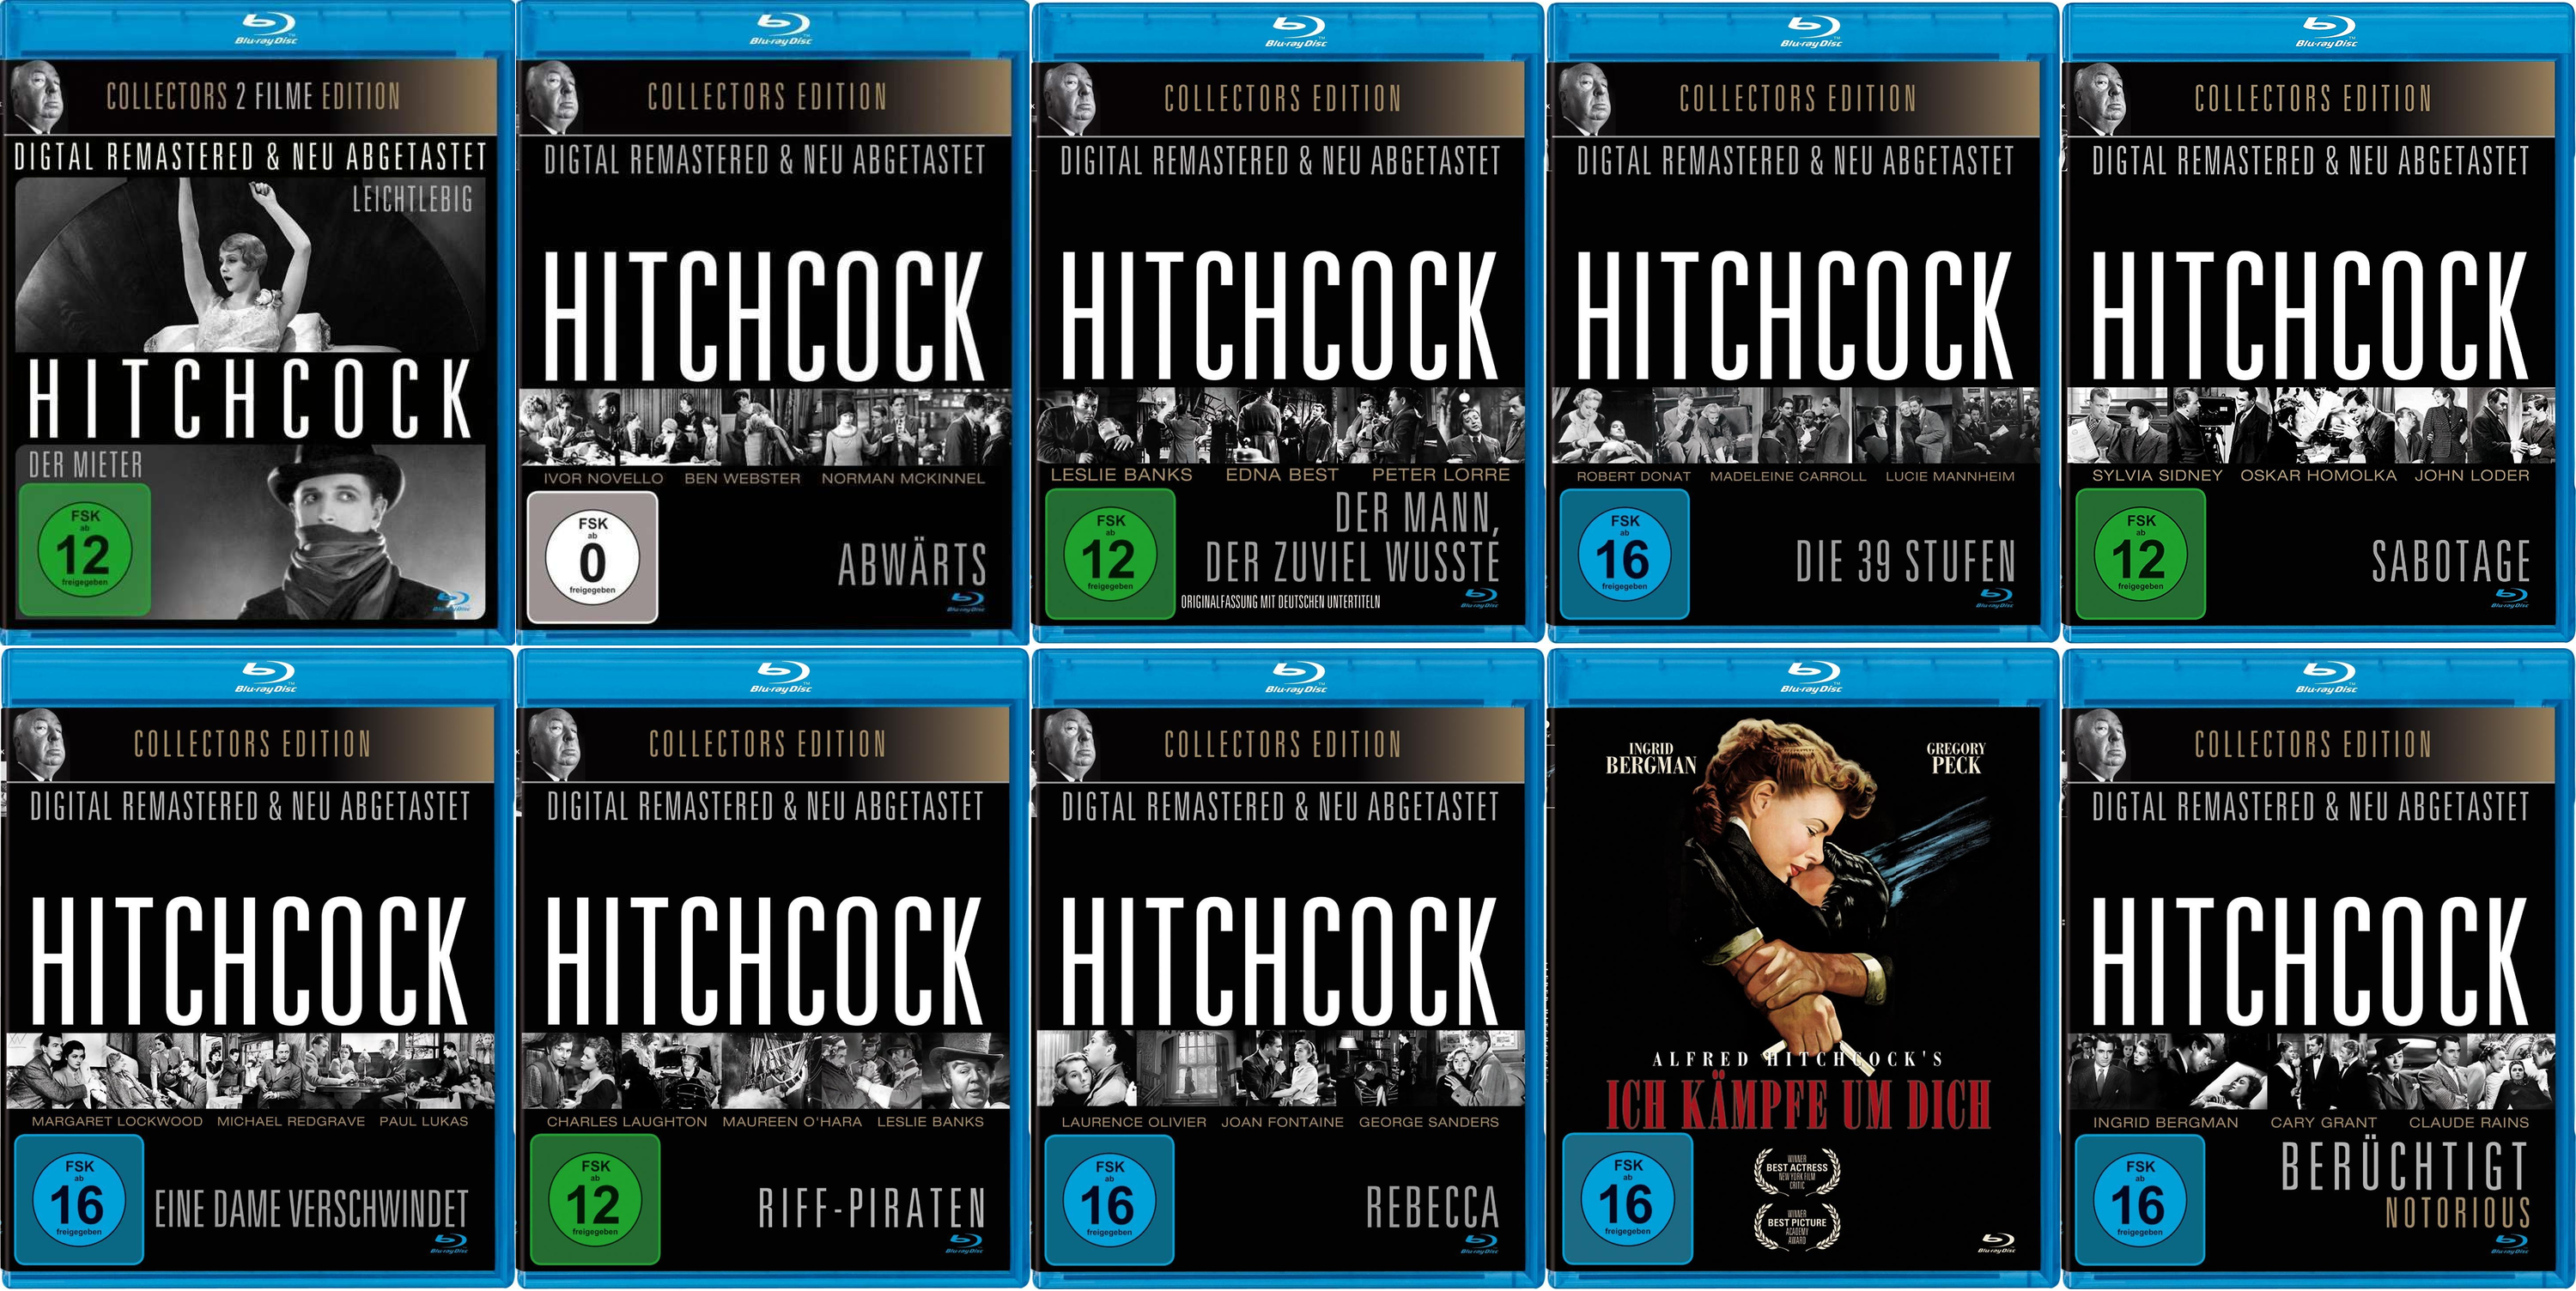 Alfred Hitchcock 1926-1946 German bootleg Blu-rays from the same company, Great Movies/Indigo/WME Home-Entertainment – they can't make their minds up either.